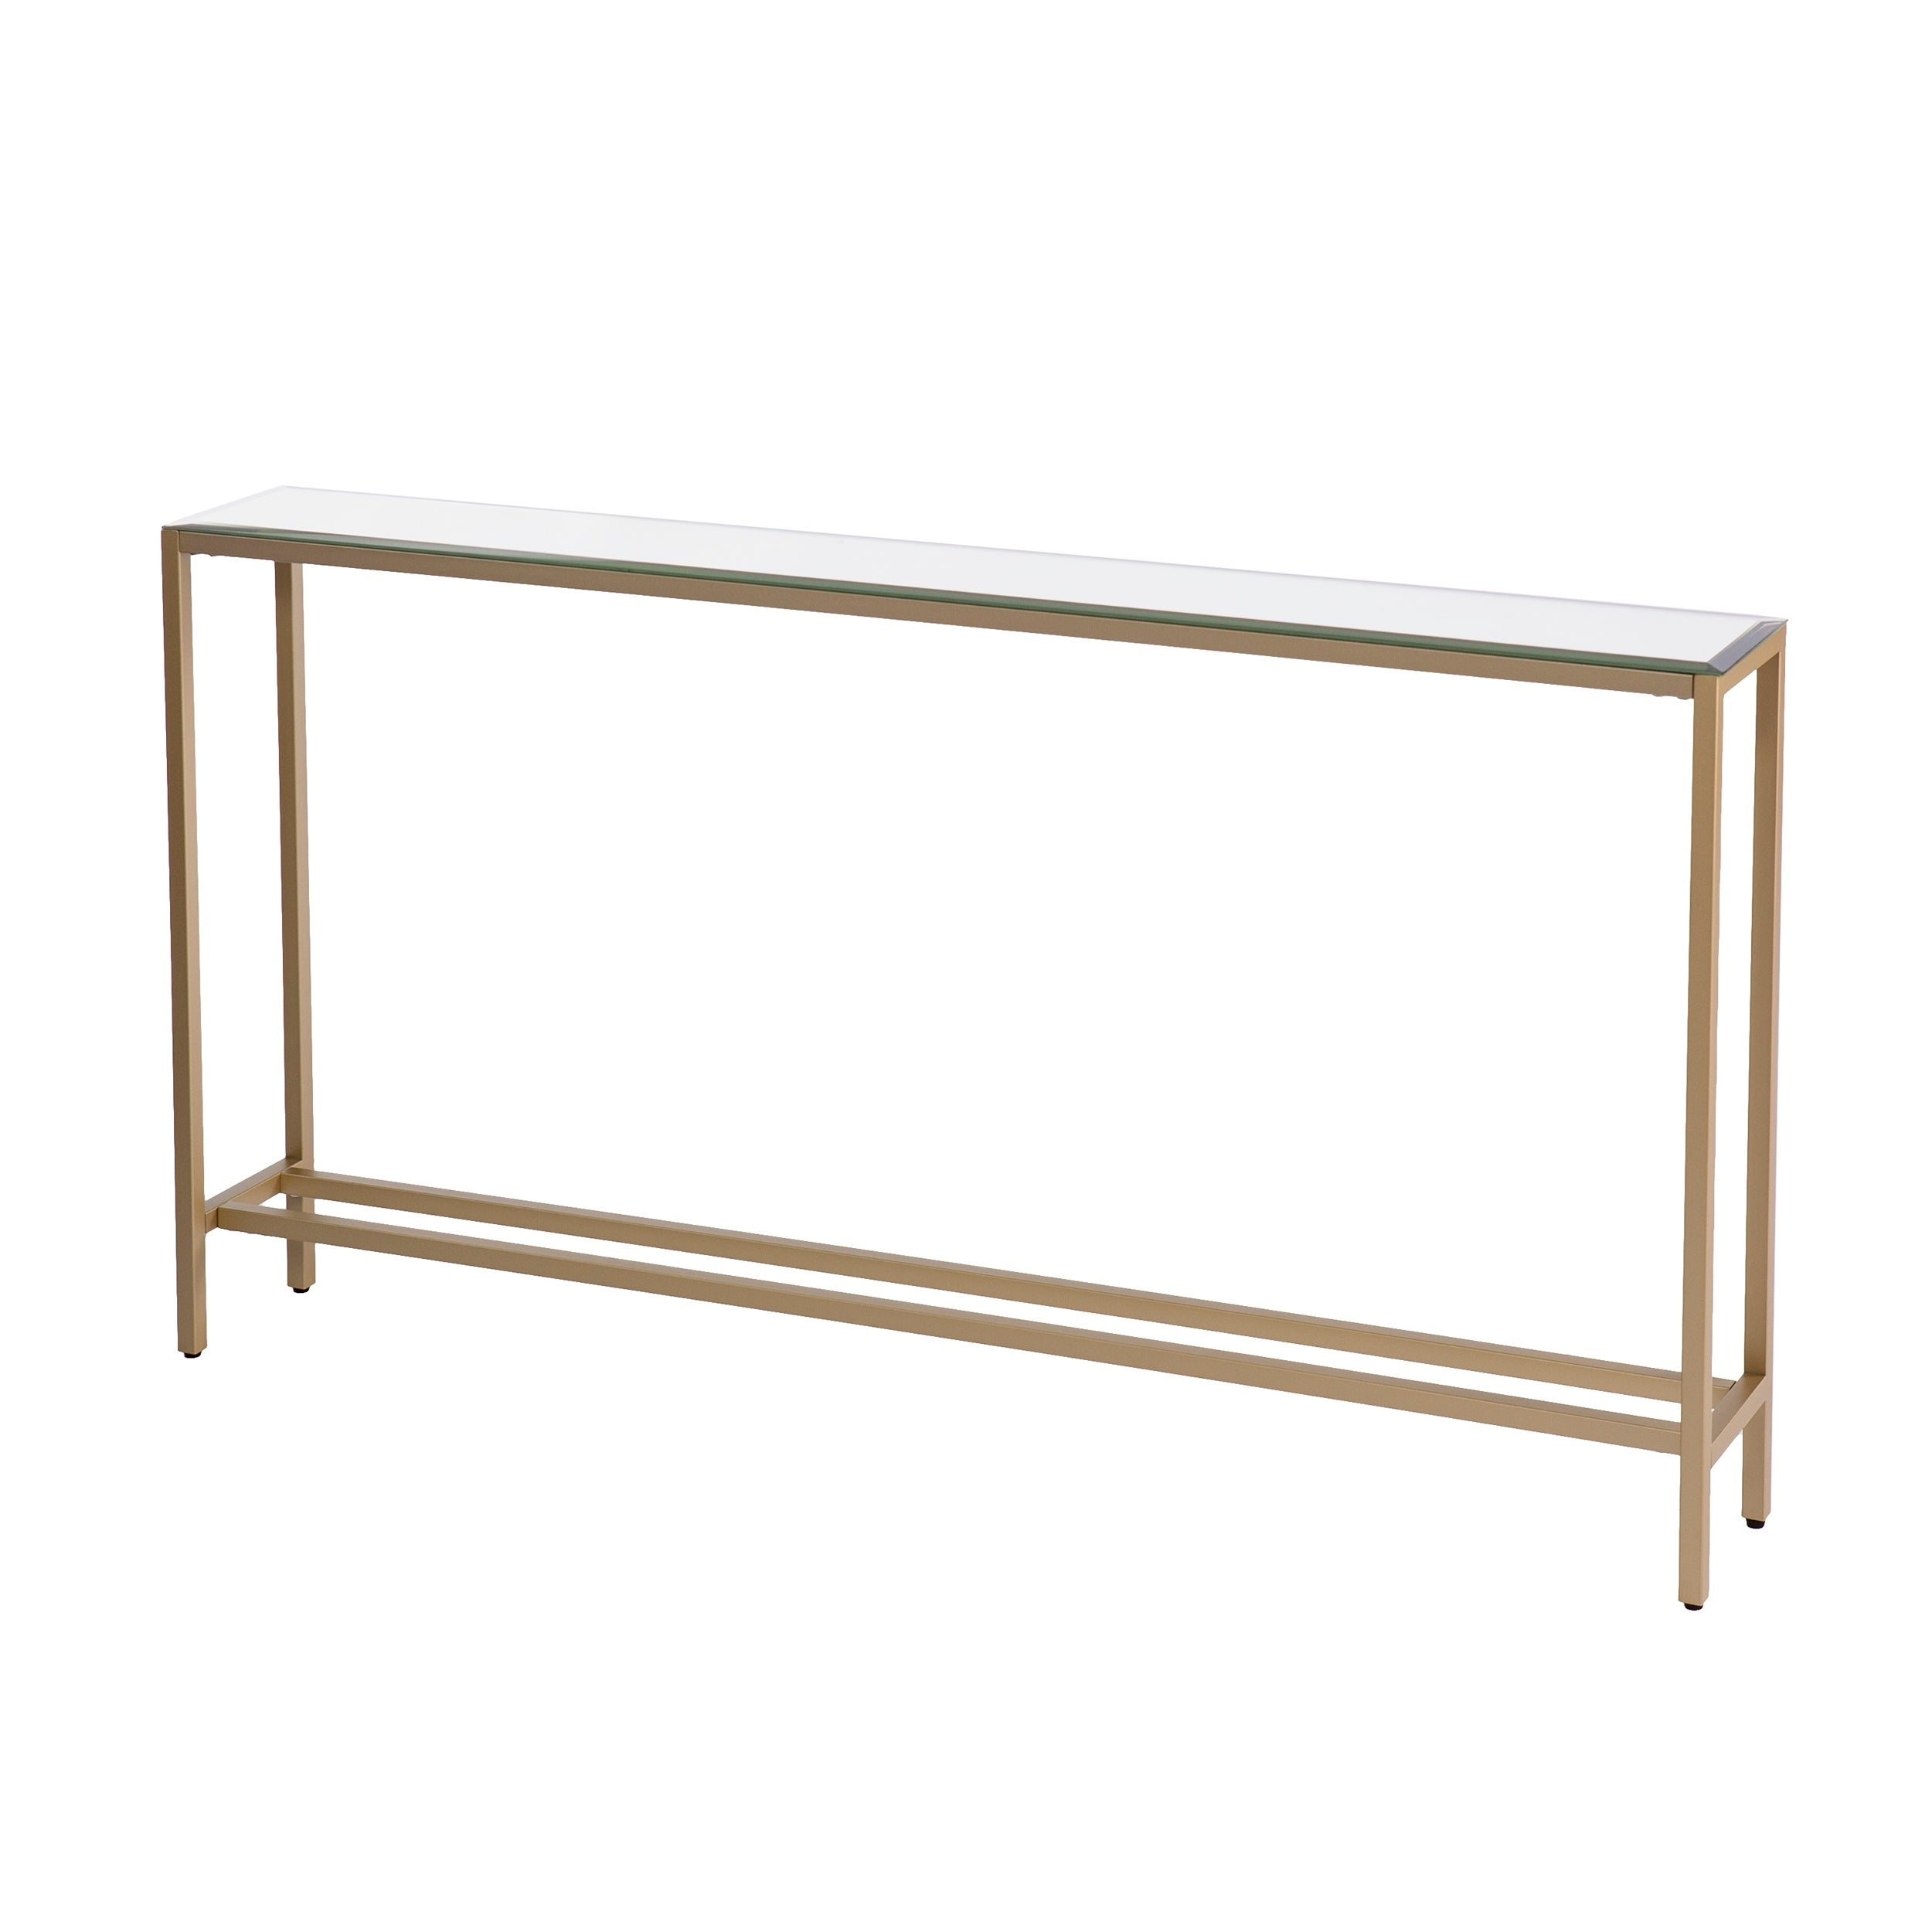 Shop harper blvd dunbar narrow long console table w mirrored top gold on sale free shipping today overstock com 18157317